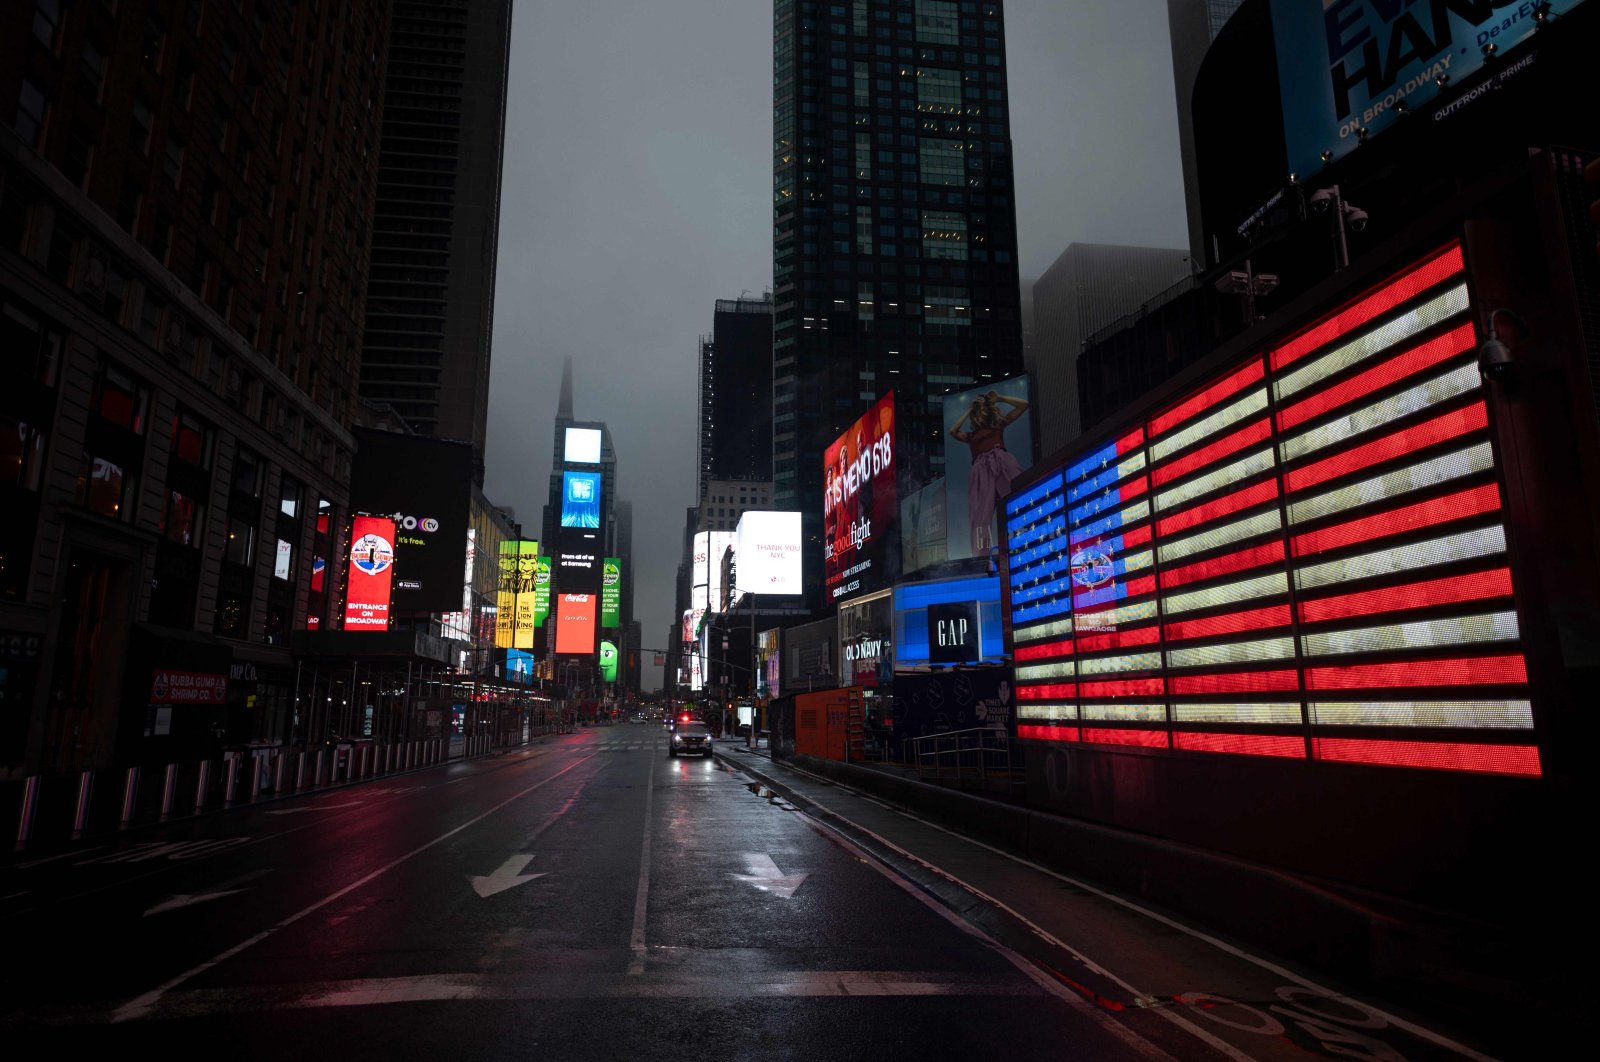 The U.S. Flag illuminates a street in Times Square amid the COVID-19 pandemic, in New York City, April 30, 2020. (AFP Photo)